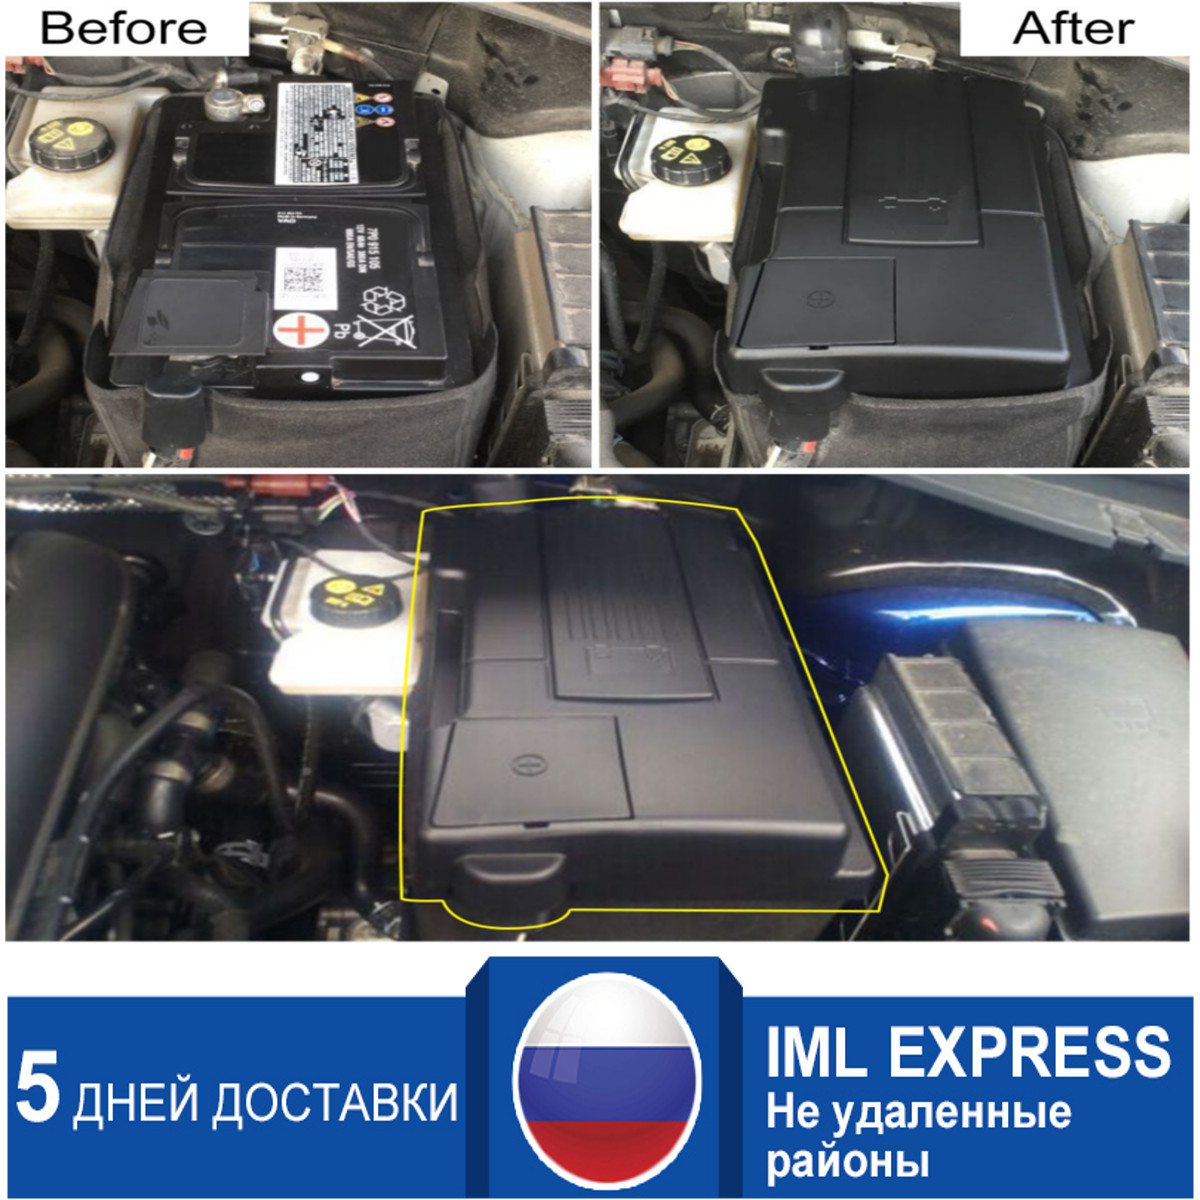 Engine Battery Dustproof Negative Electrode Waterproof Protective Cover For Skoda Kodiaq Octavia 5E A7 VW Tiguan L 2016 - 2019